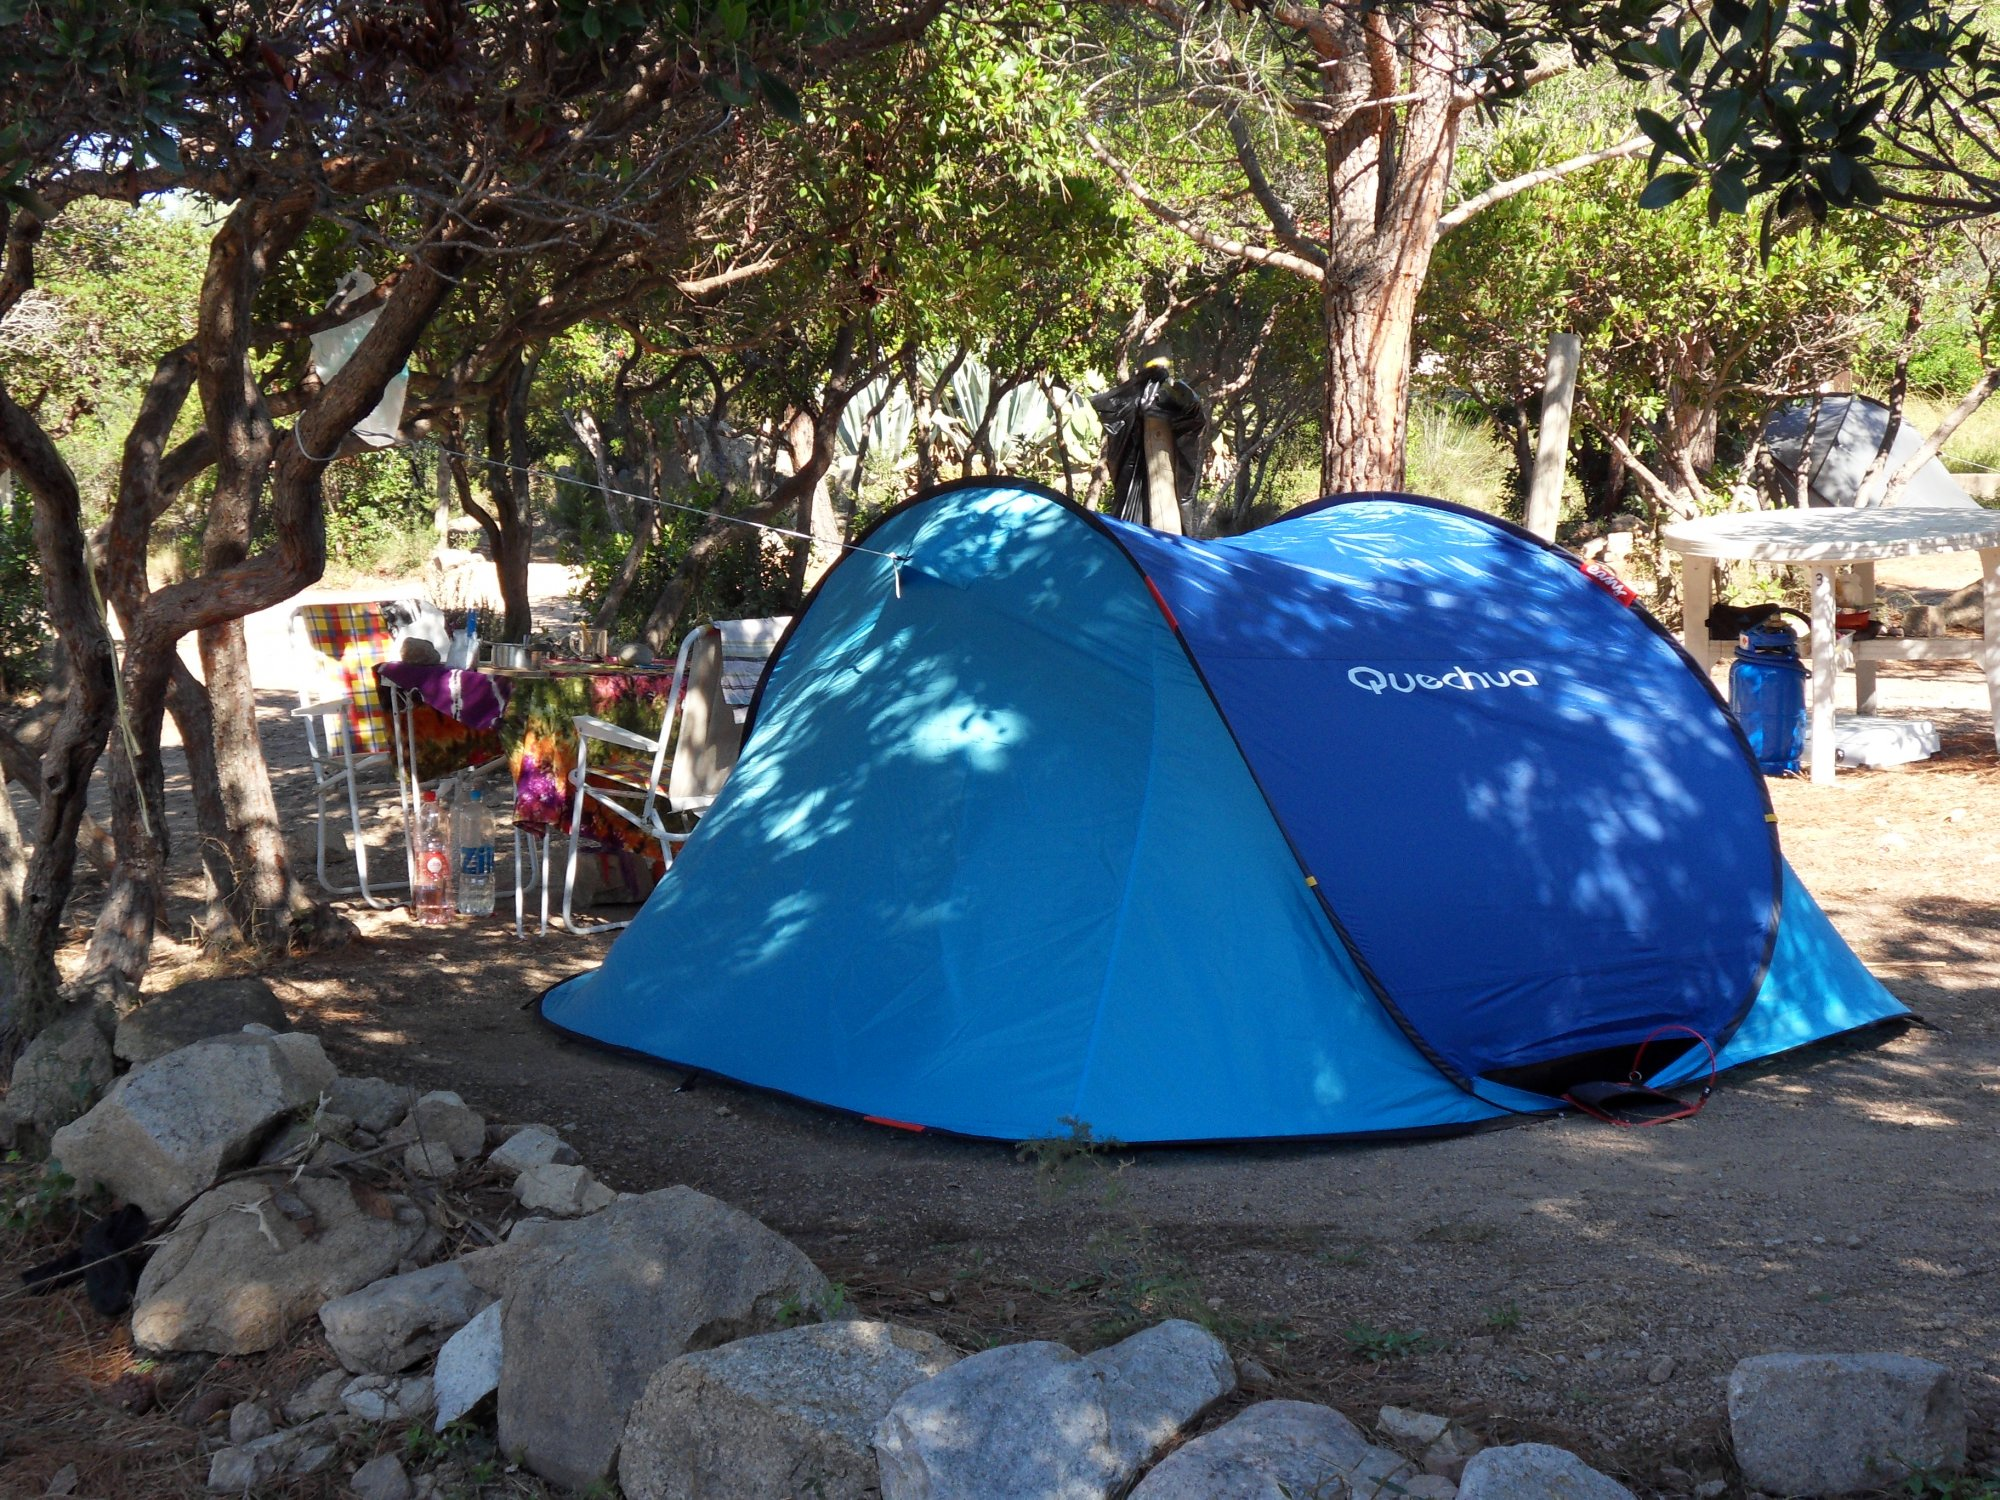 Camping corse reservation emplacement